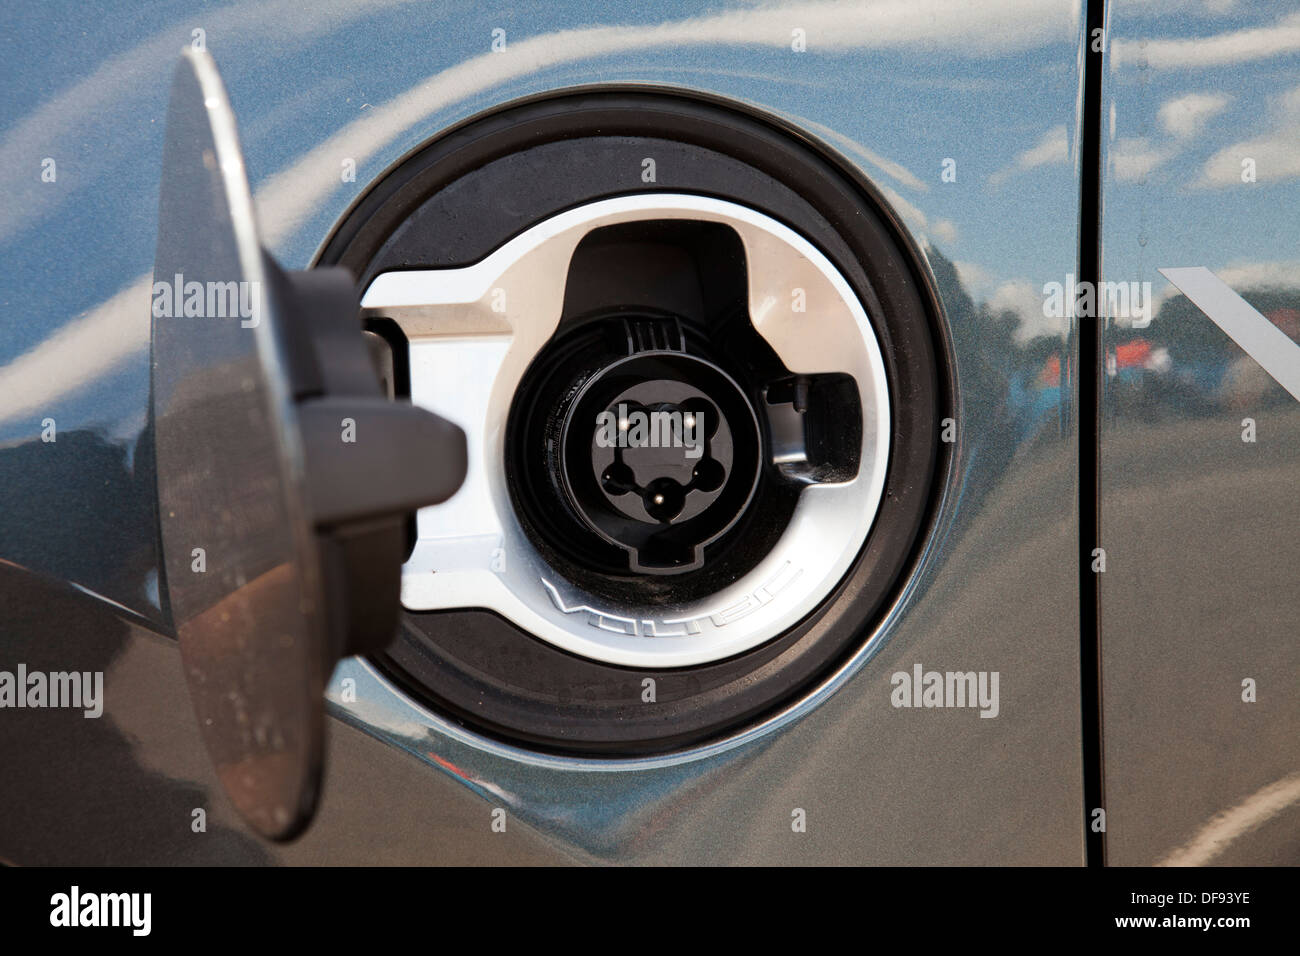 Chevy Volt electric hybrid car charge plug receptacle - Stock Image